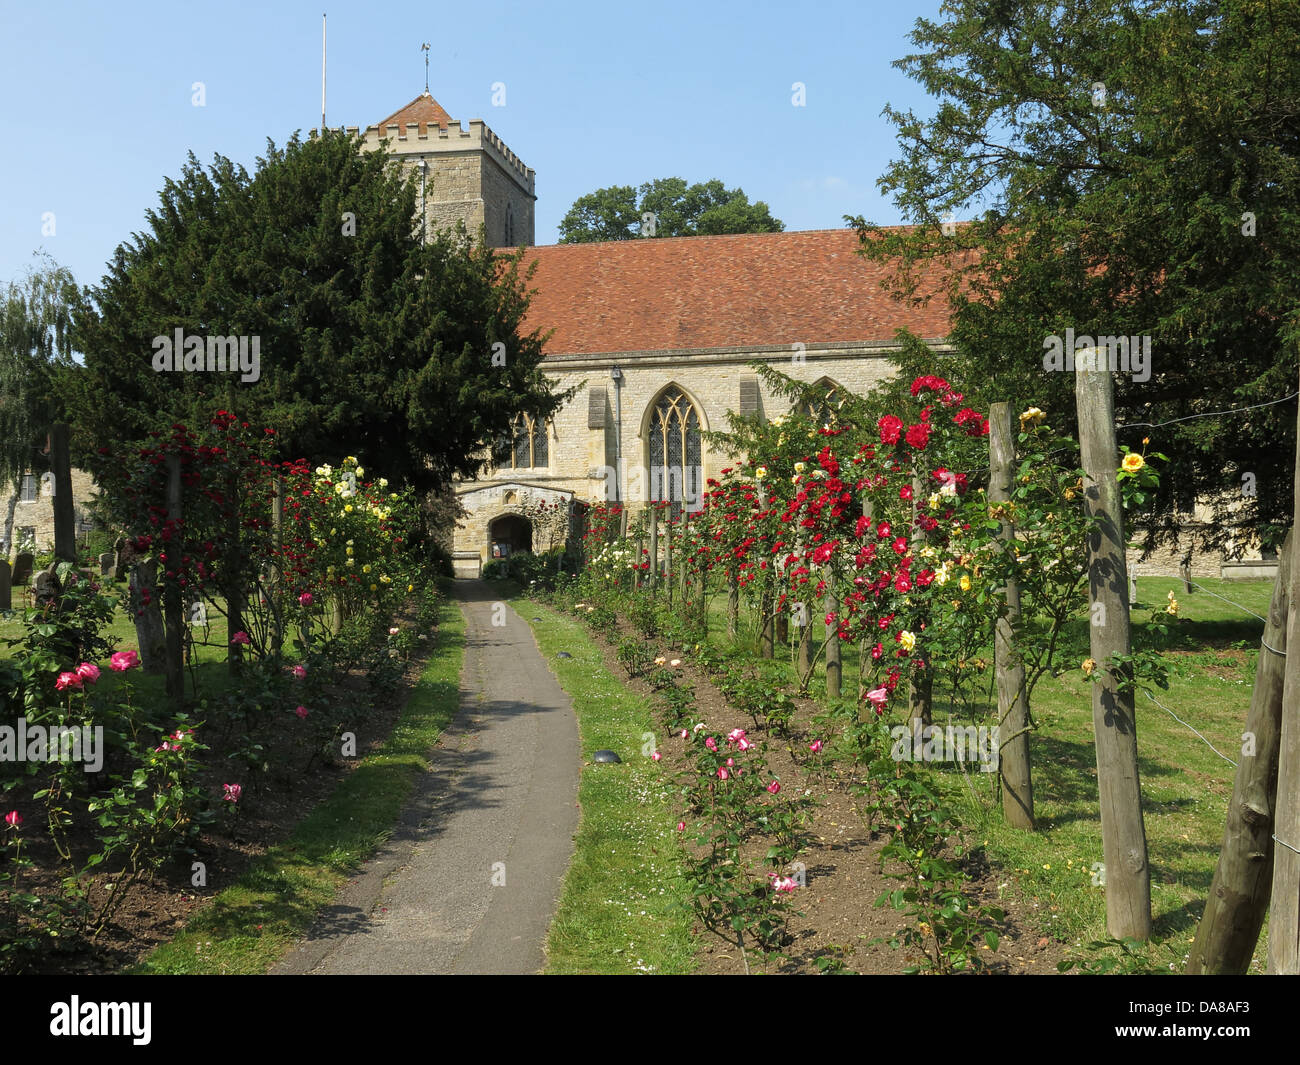 Beautiful,Dorchester,On,Thames,building,interior,of,St,Peter,&,St,Paul,HDR,oxen,oxford,oxfordshire,ancient,monument,Garden,&,Graveyard,of,Beautiful,Dorchester,On,Thames,Abbey,Church,of,St,Peter,&,St,Paul,flowers,summer,in,roses,walk,path,Gotonysmith monuments NT,Buy Pictures of,Buy Images Of